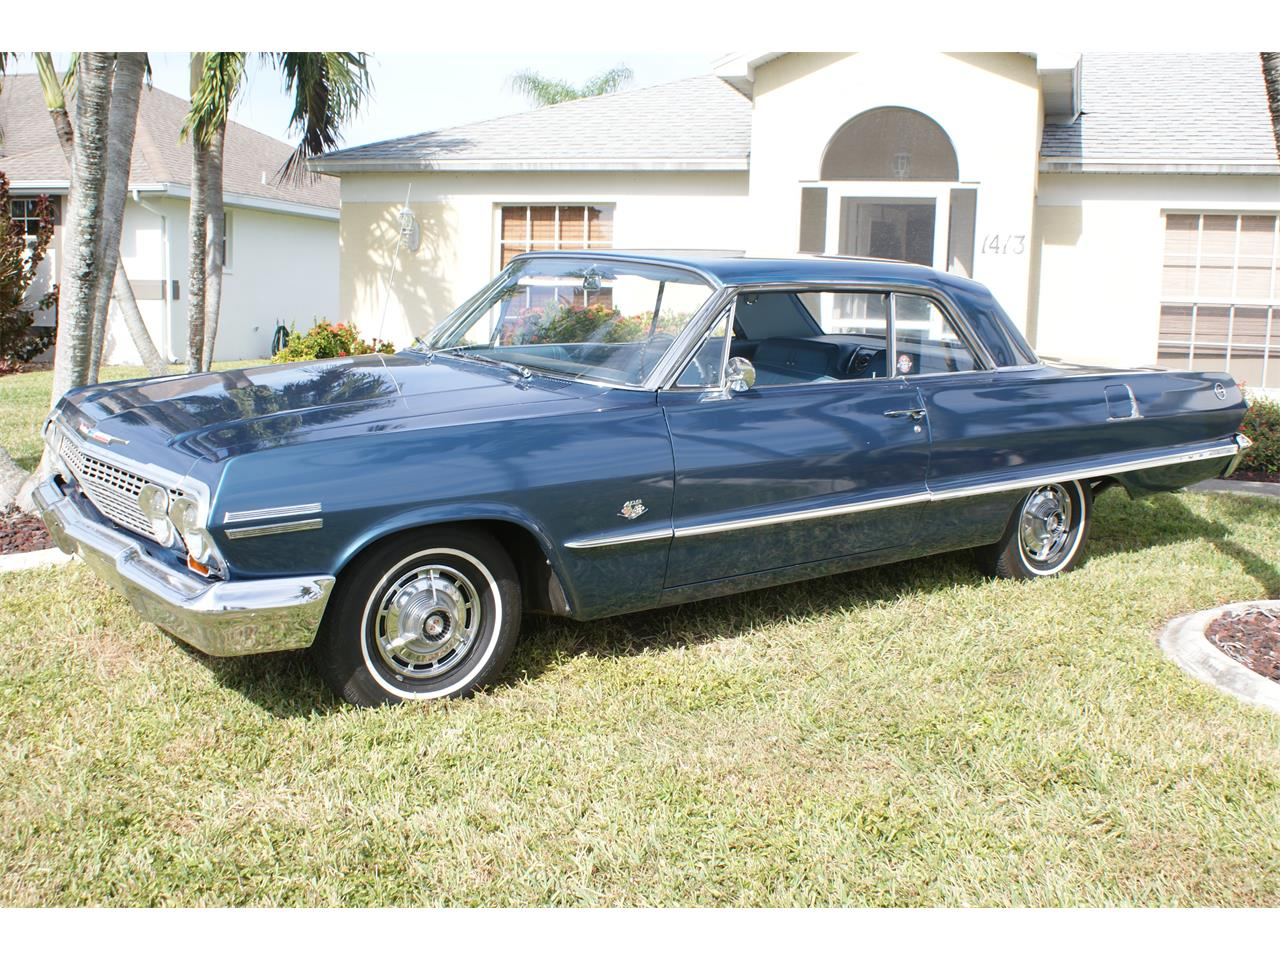 Large Picture of '63 Impala located in CAPE CORAL Florida - P4QR